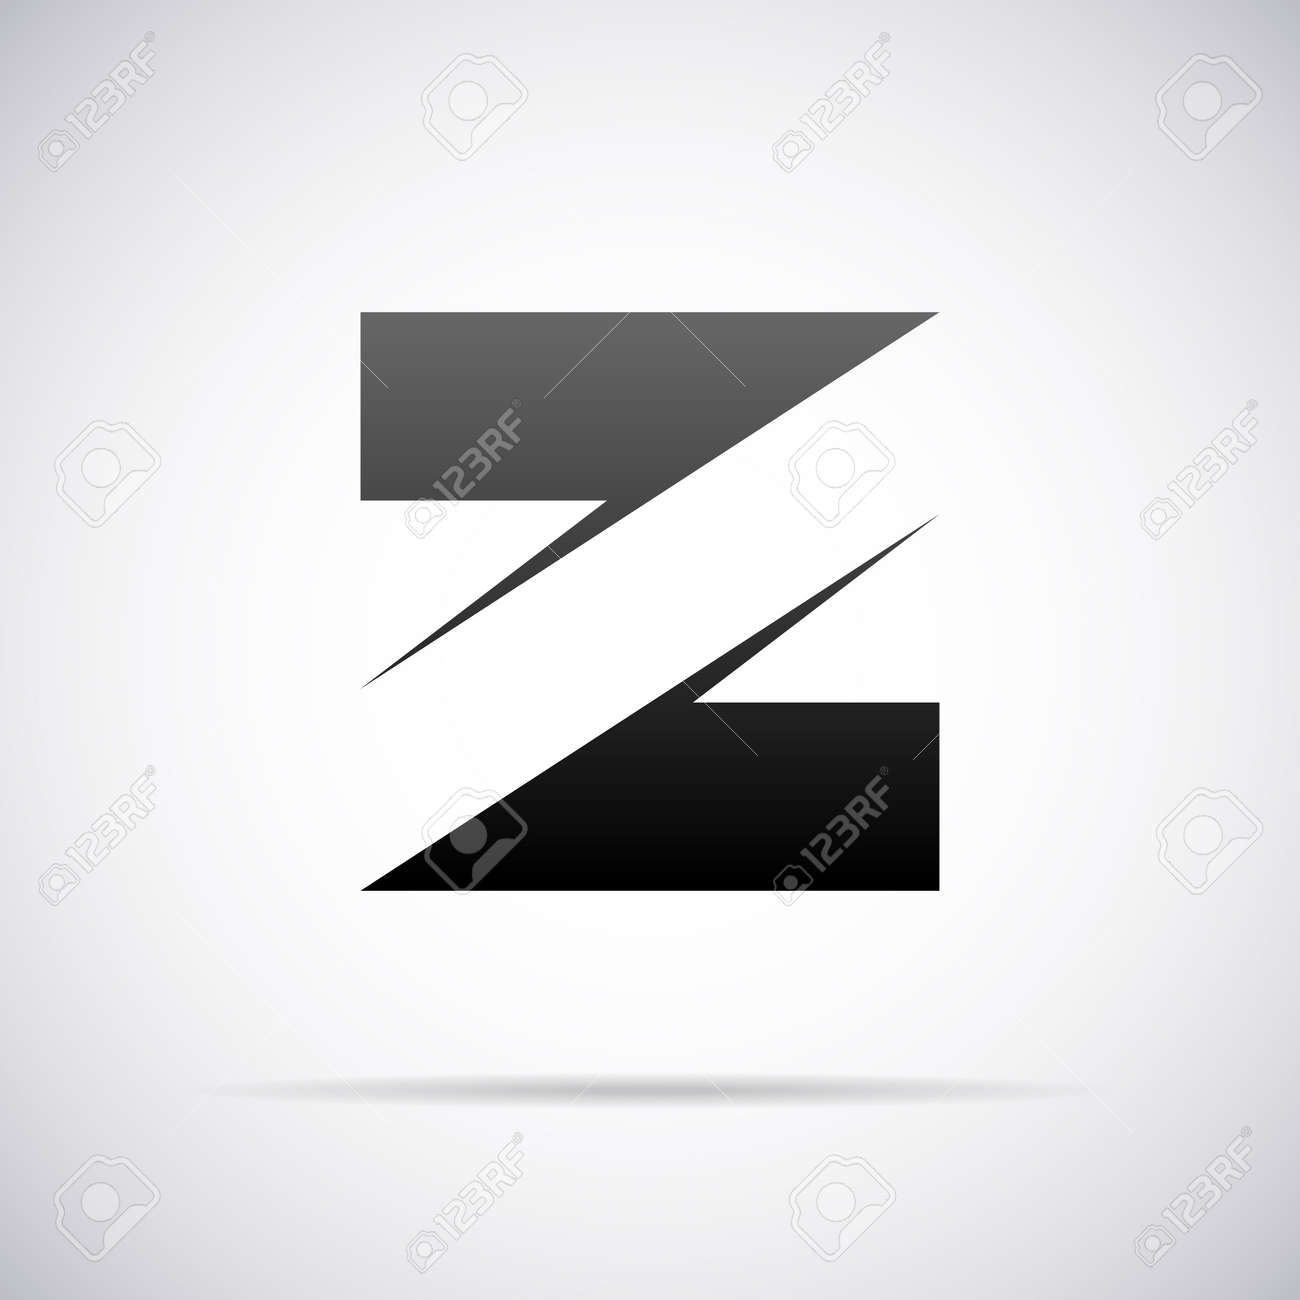 Great Letter Z Design Template Vector Illustration Stock Vector   40680981